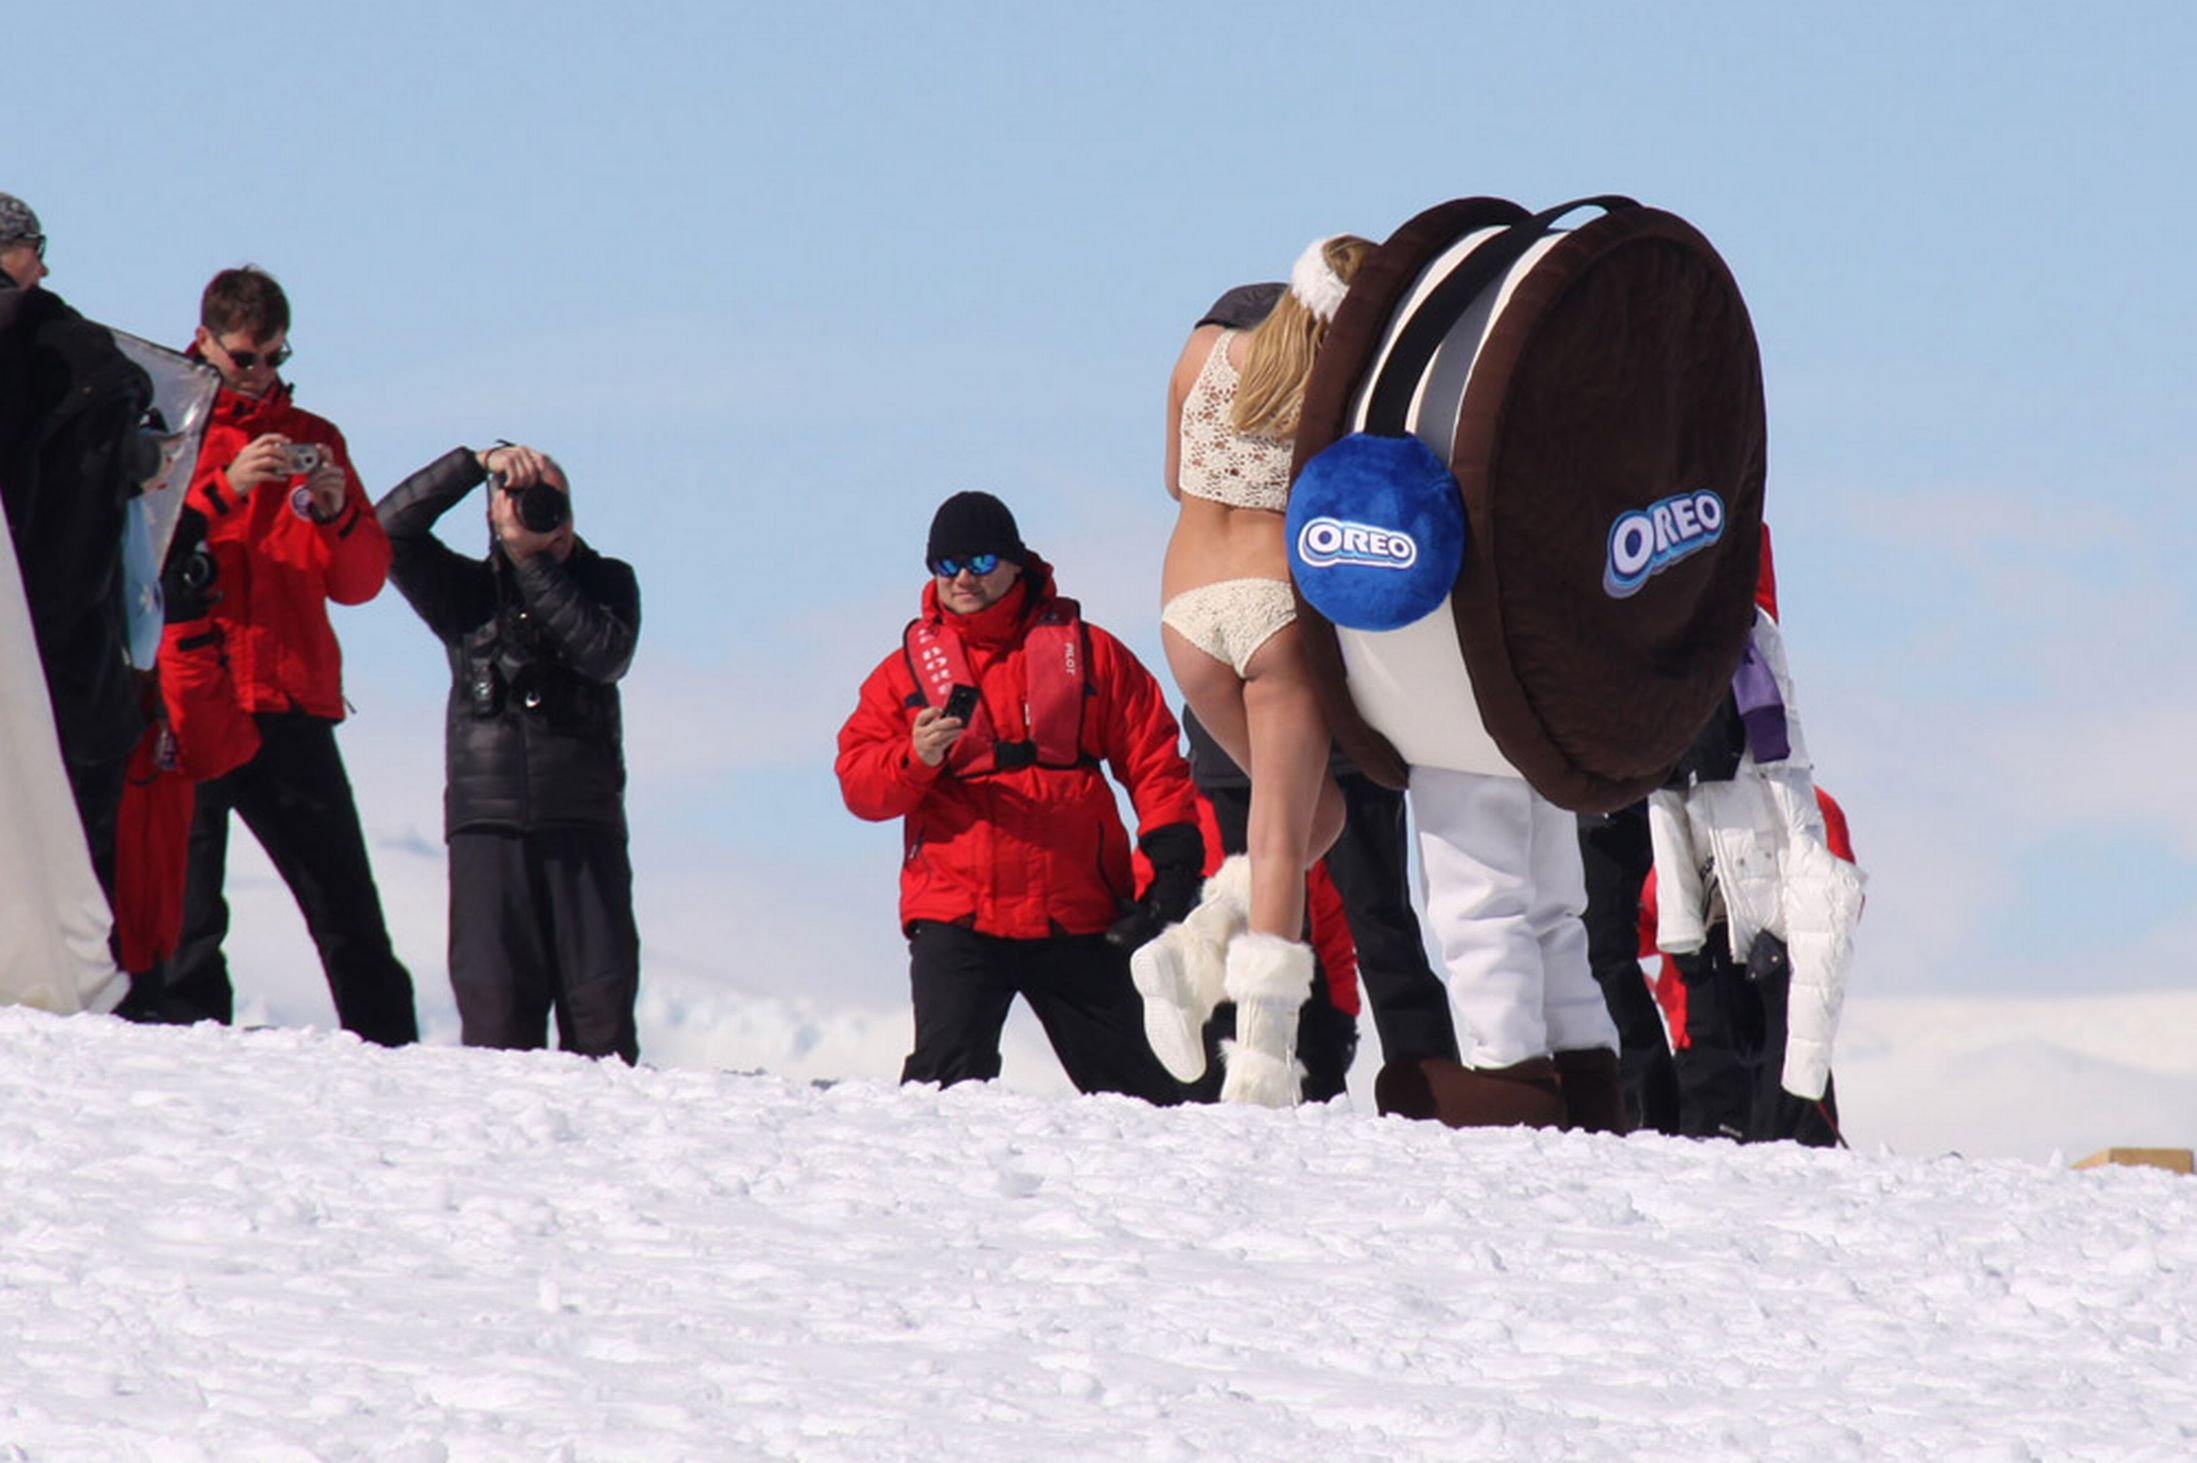 Kate Upton with a giant Oreo cookie.